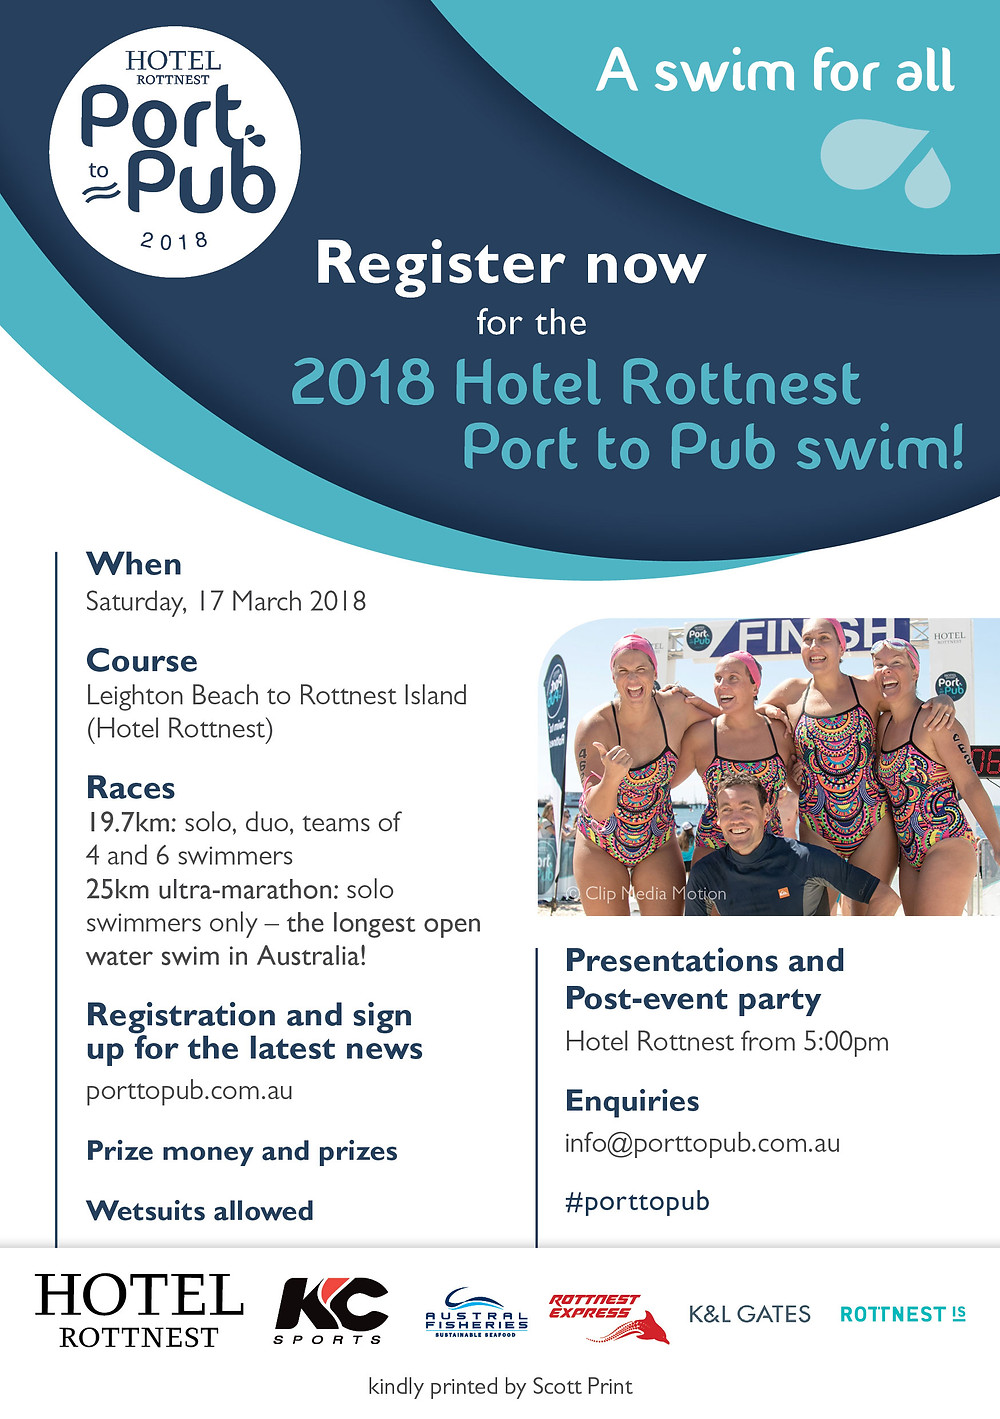 The 2018 Port to Pub is coming up quickly!  This is a fantastic event whether you are competitive or just up for the challenge. Try the solo swim or get a team together and make a fun day of it. Subiaco Sports Massage clinic are proud sponsors of this event since its debut in 2016! We will have a team of massage therapist waiting at the finish line for a post event treatment! For more information about the event, head to www.porttopub.com.au!